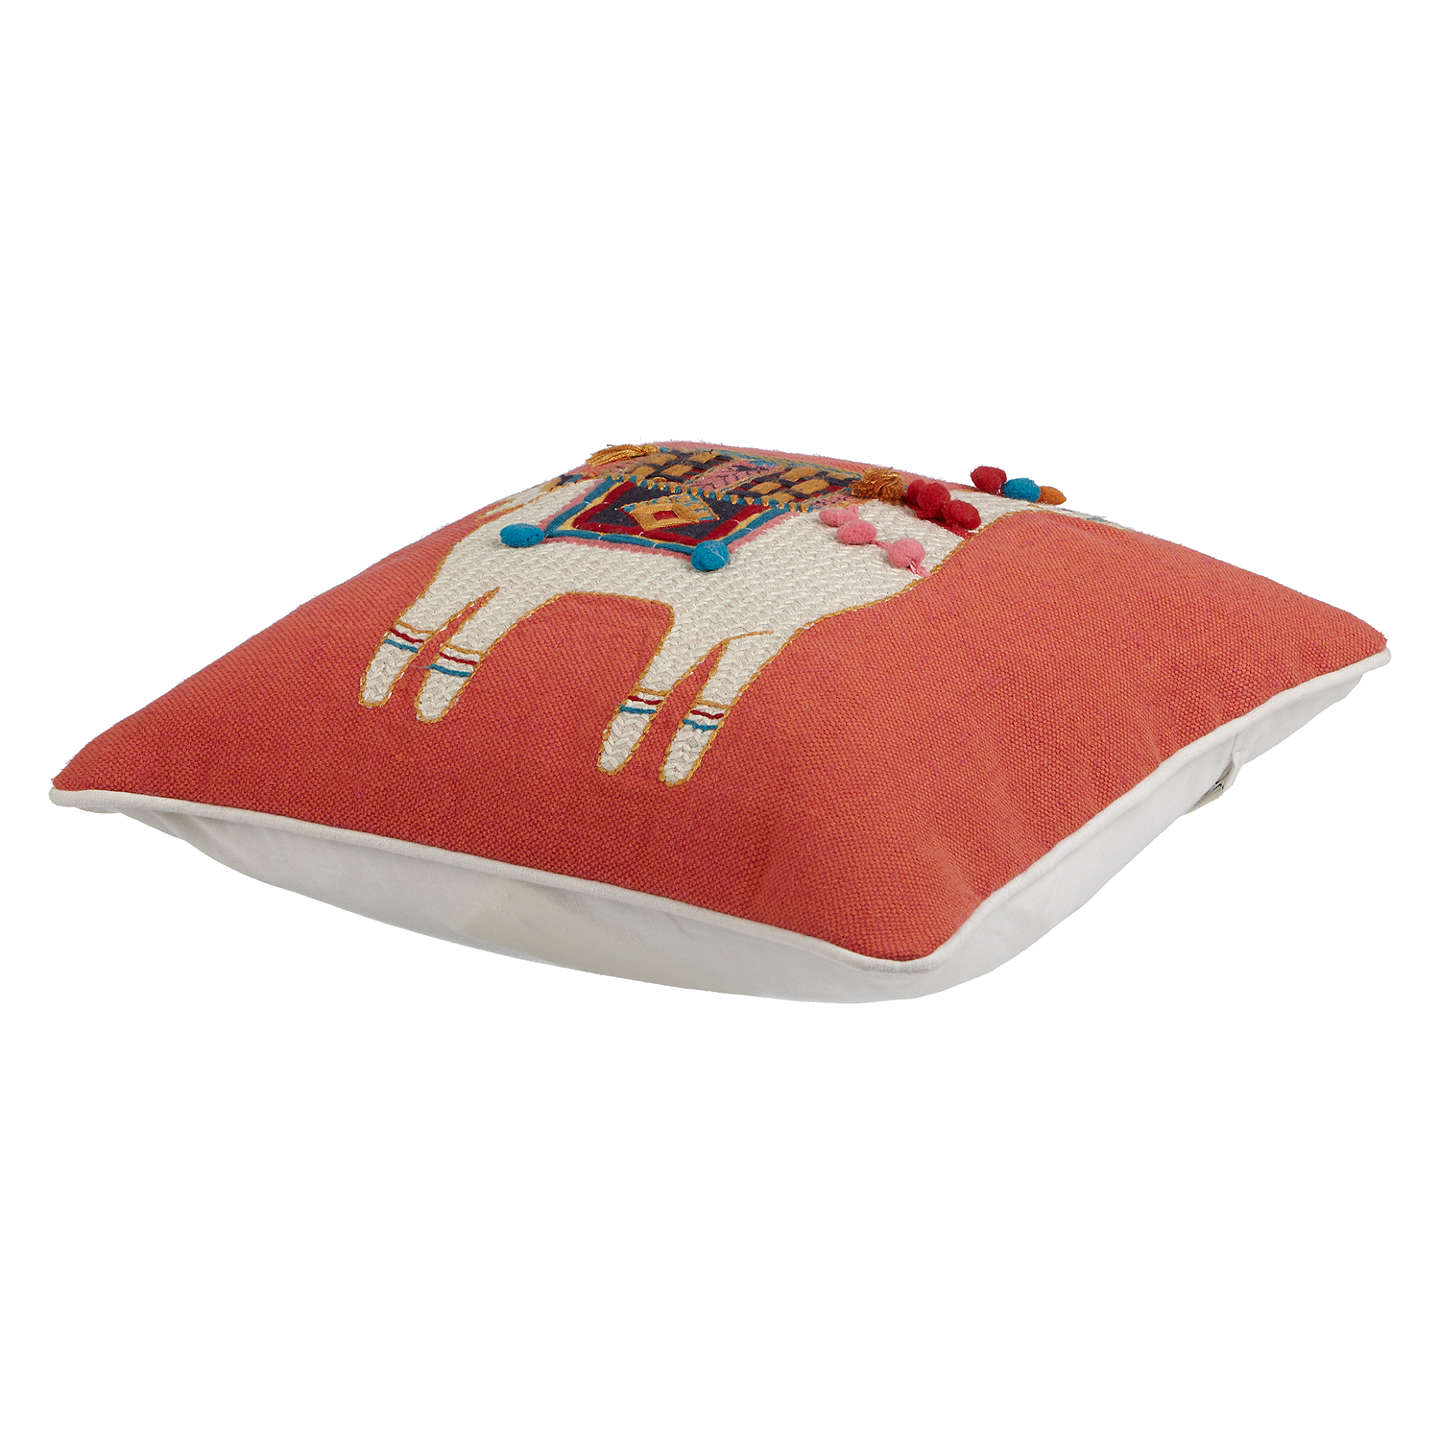 BuyJohn Lewis Llama Cushion, Multi Online at johnlewis.com